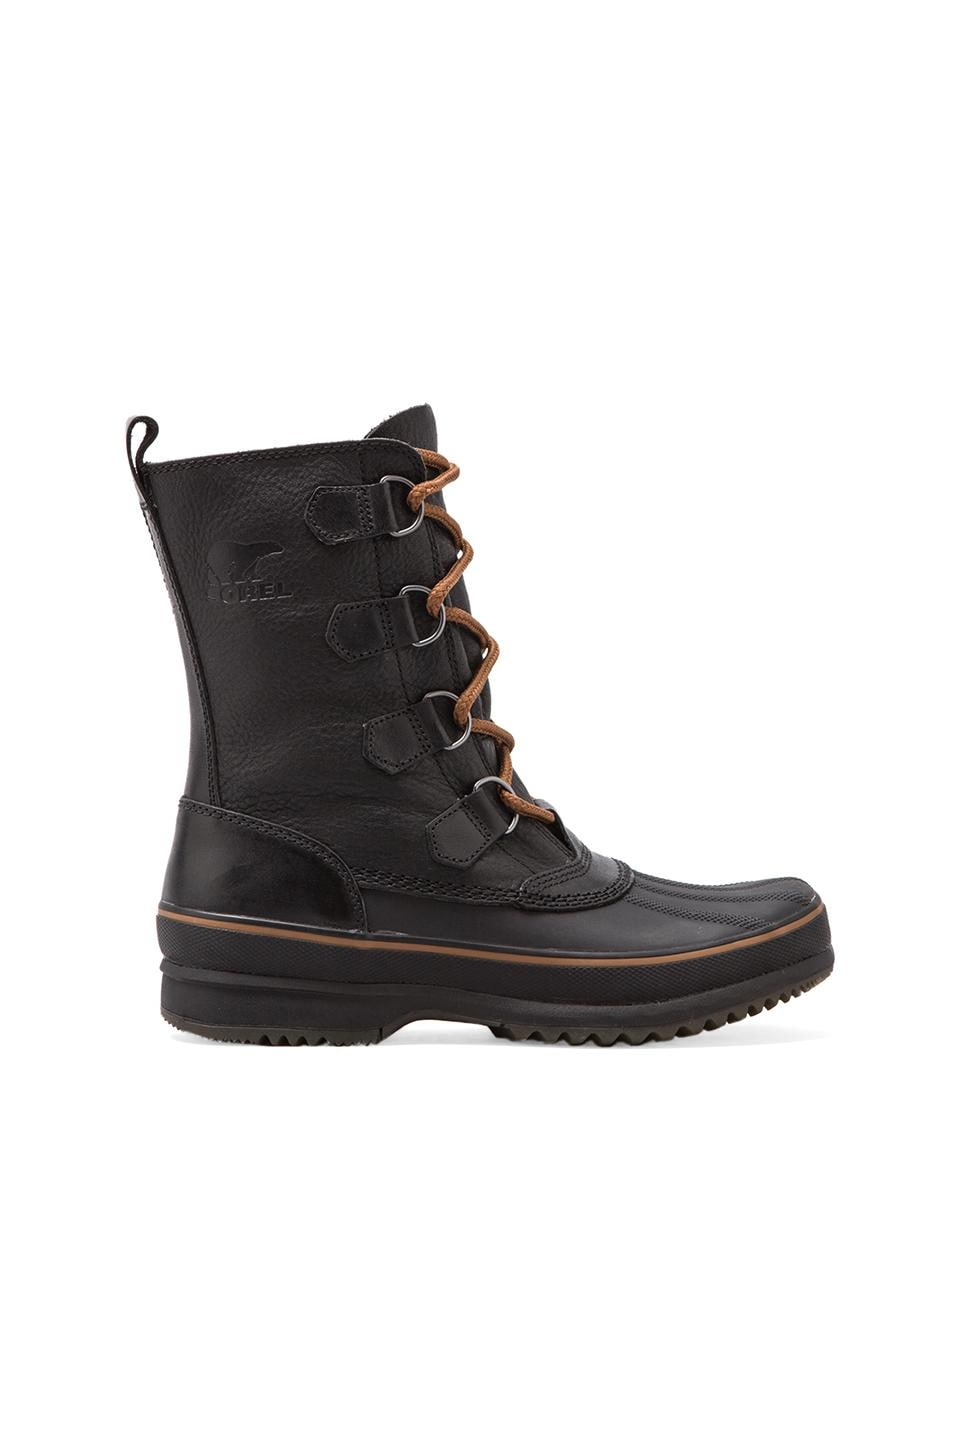 Sorel Kitchener Caribou in Black/ Grizzly Bear